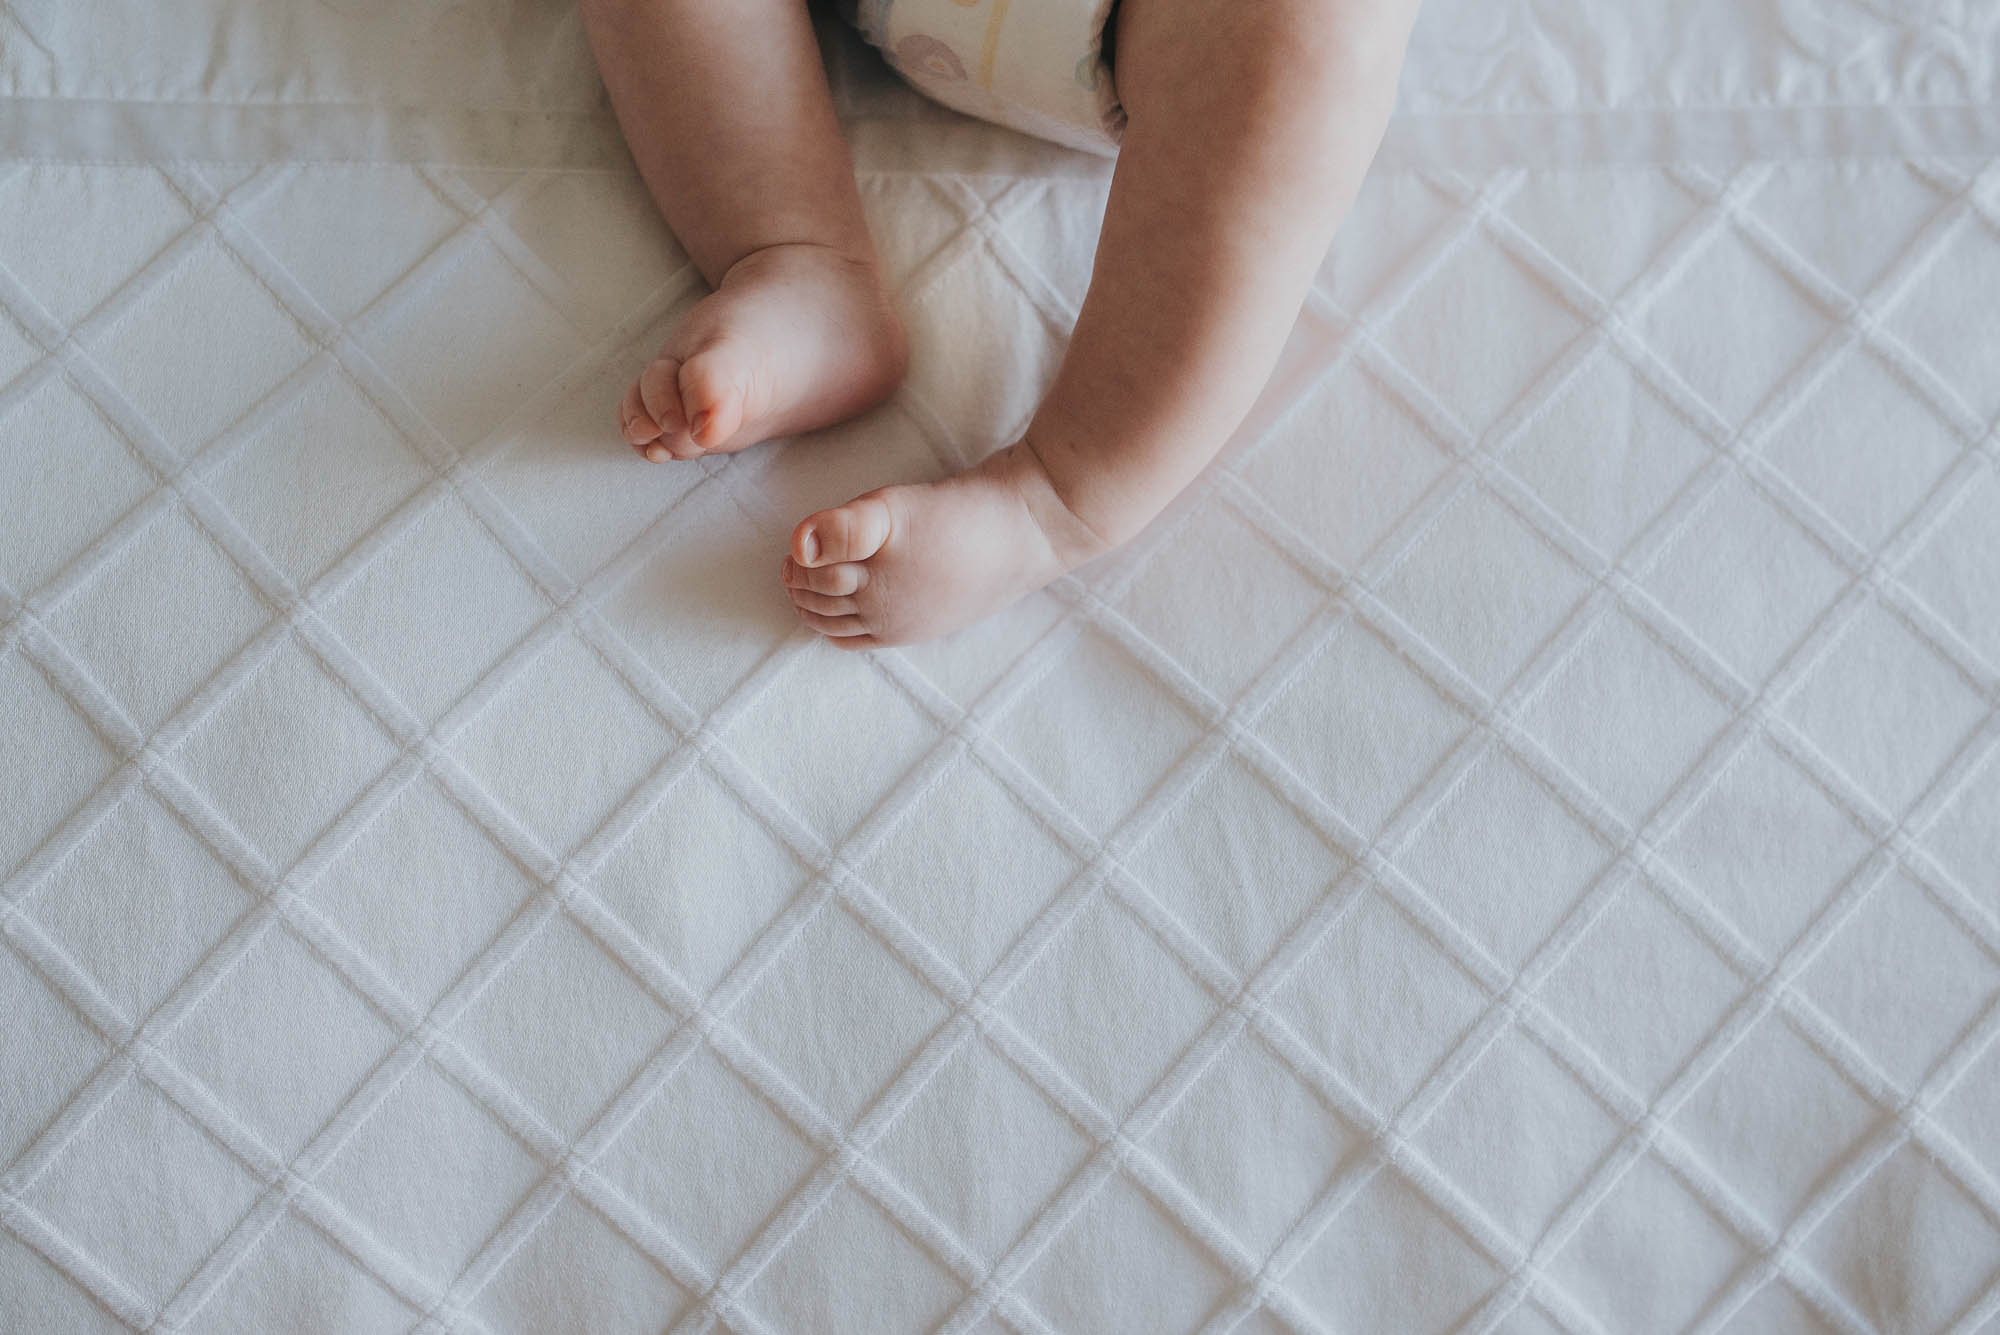 baby-feet-on-diamond-shape-blanket.jpg